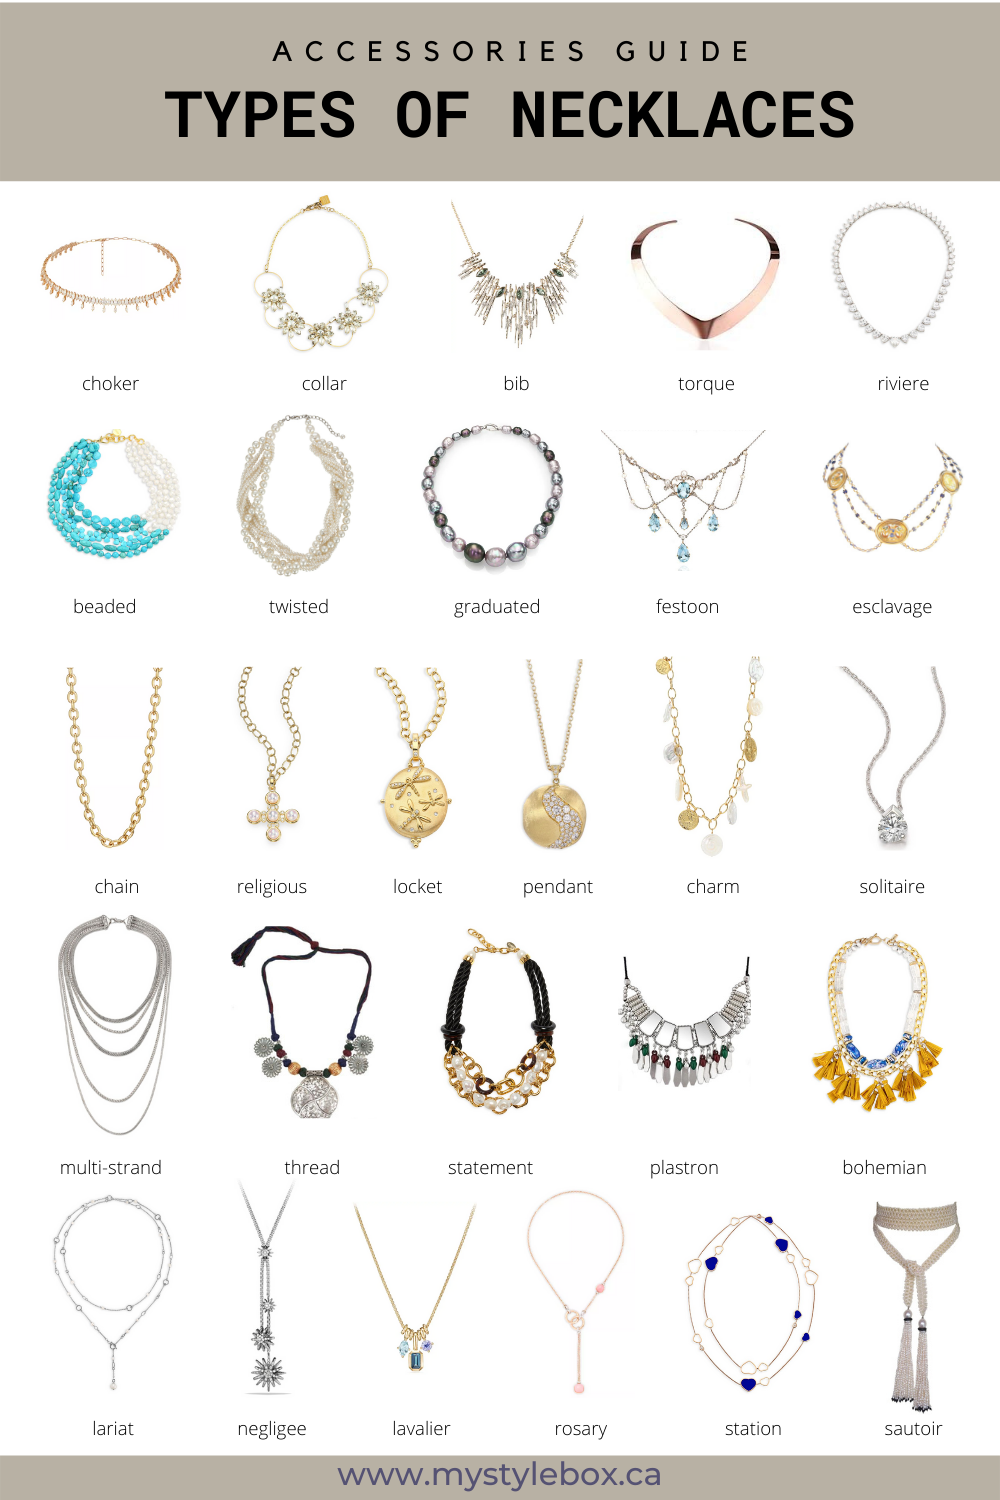 Types of Necklaces